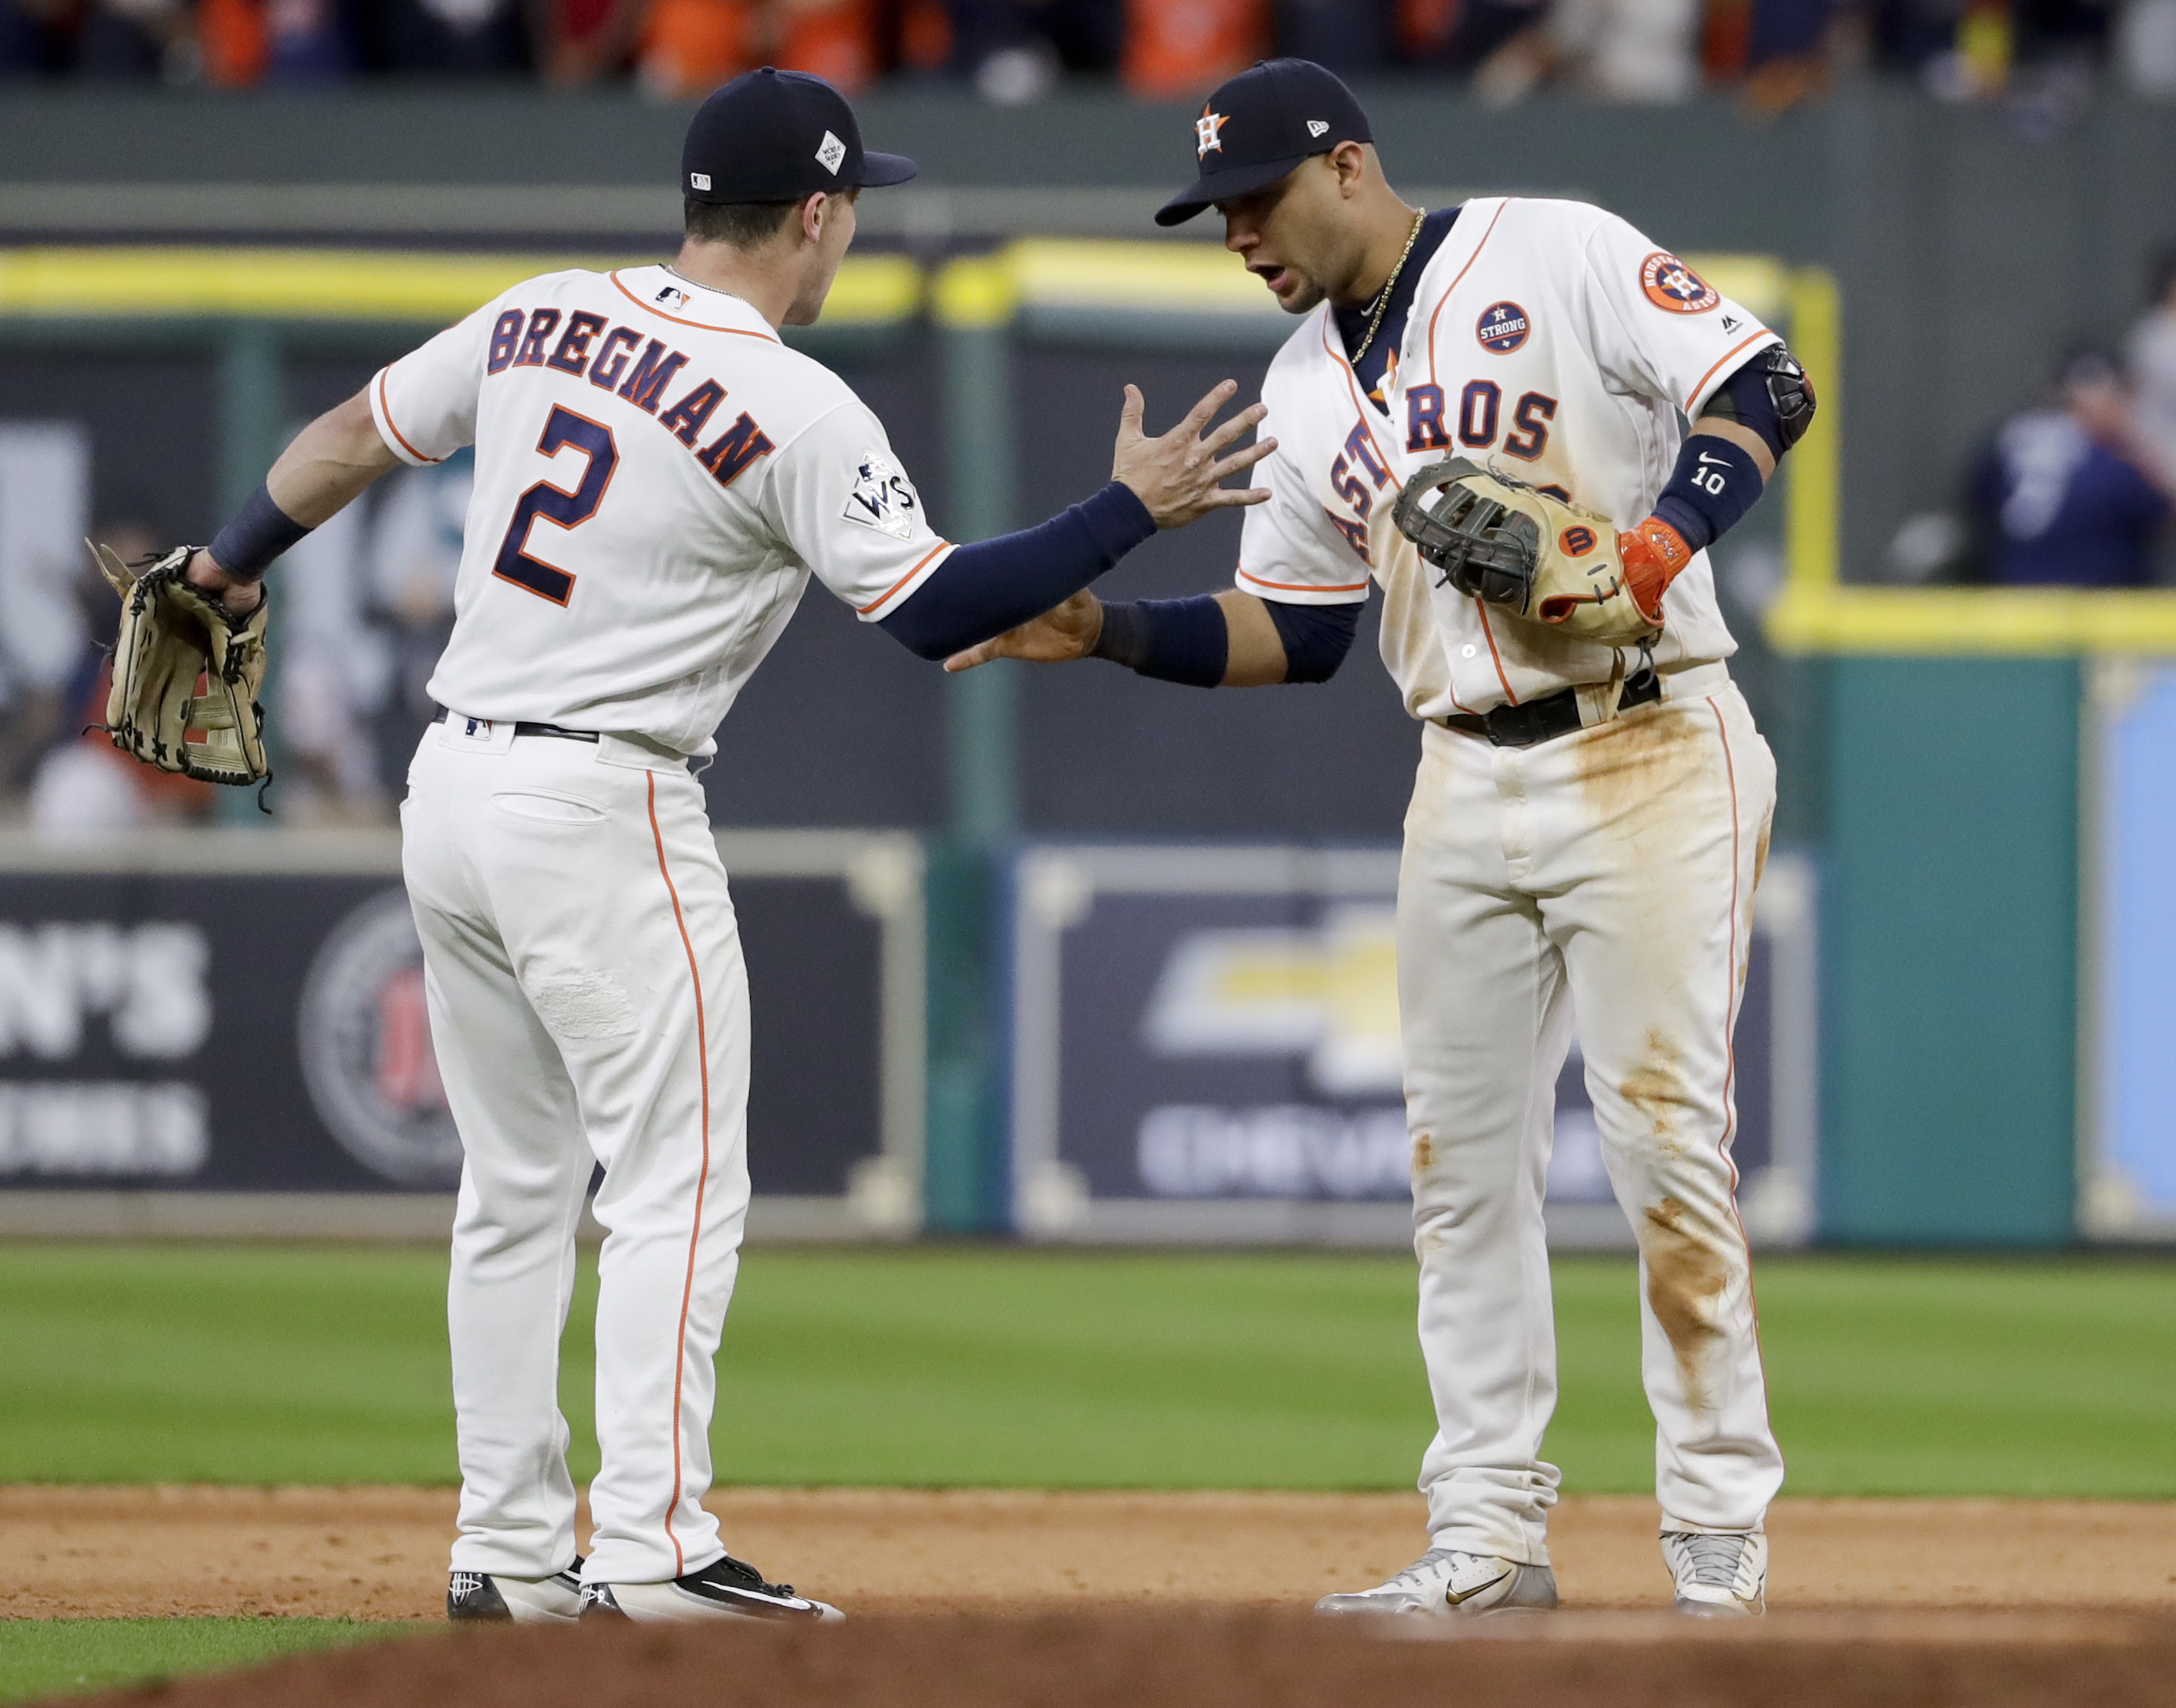 Houston Astros third baseman Alex Bregman, left, and first baseman Yuli Gurriel celebrate after their win against the Los Angeles Dodgers during Game 3 of baseball's World Series Friday, Oct. 27, 2017, in Houston. The Astros won 5-3 to take a 2-1 lead in the series. (AP Photo/Matt Slocum)